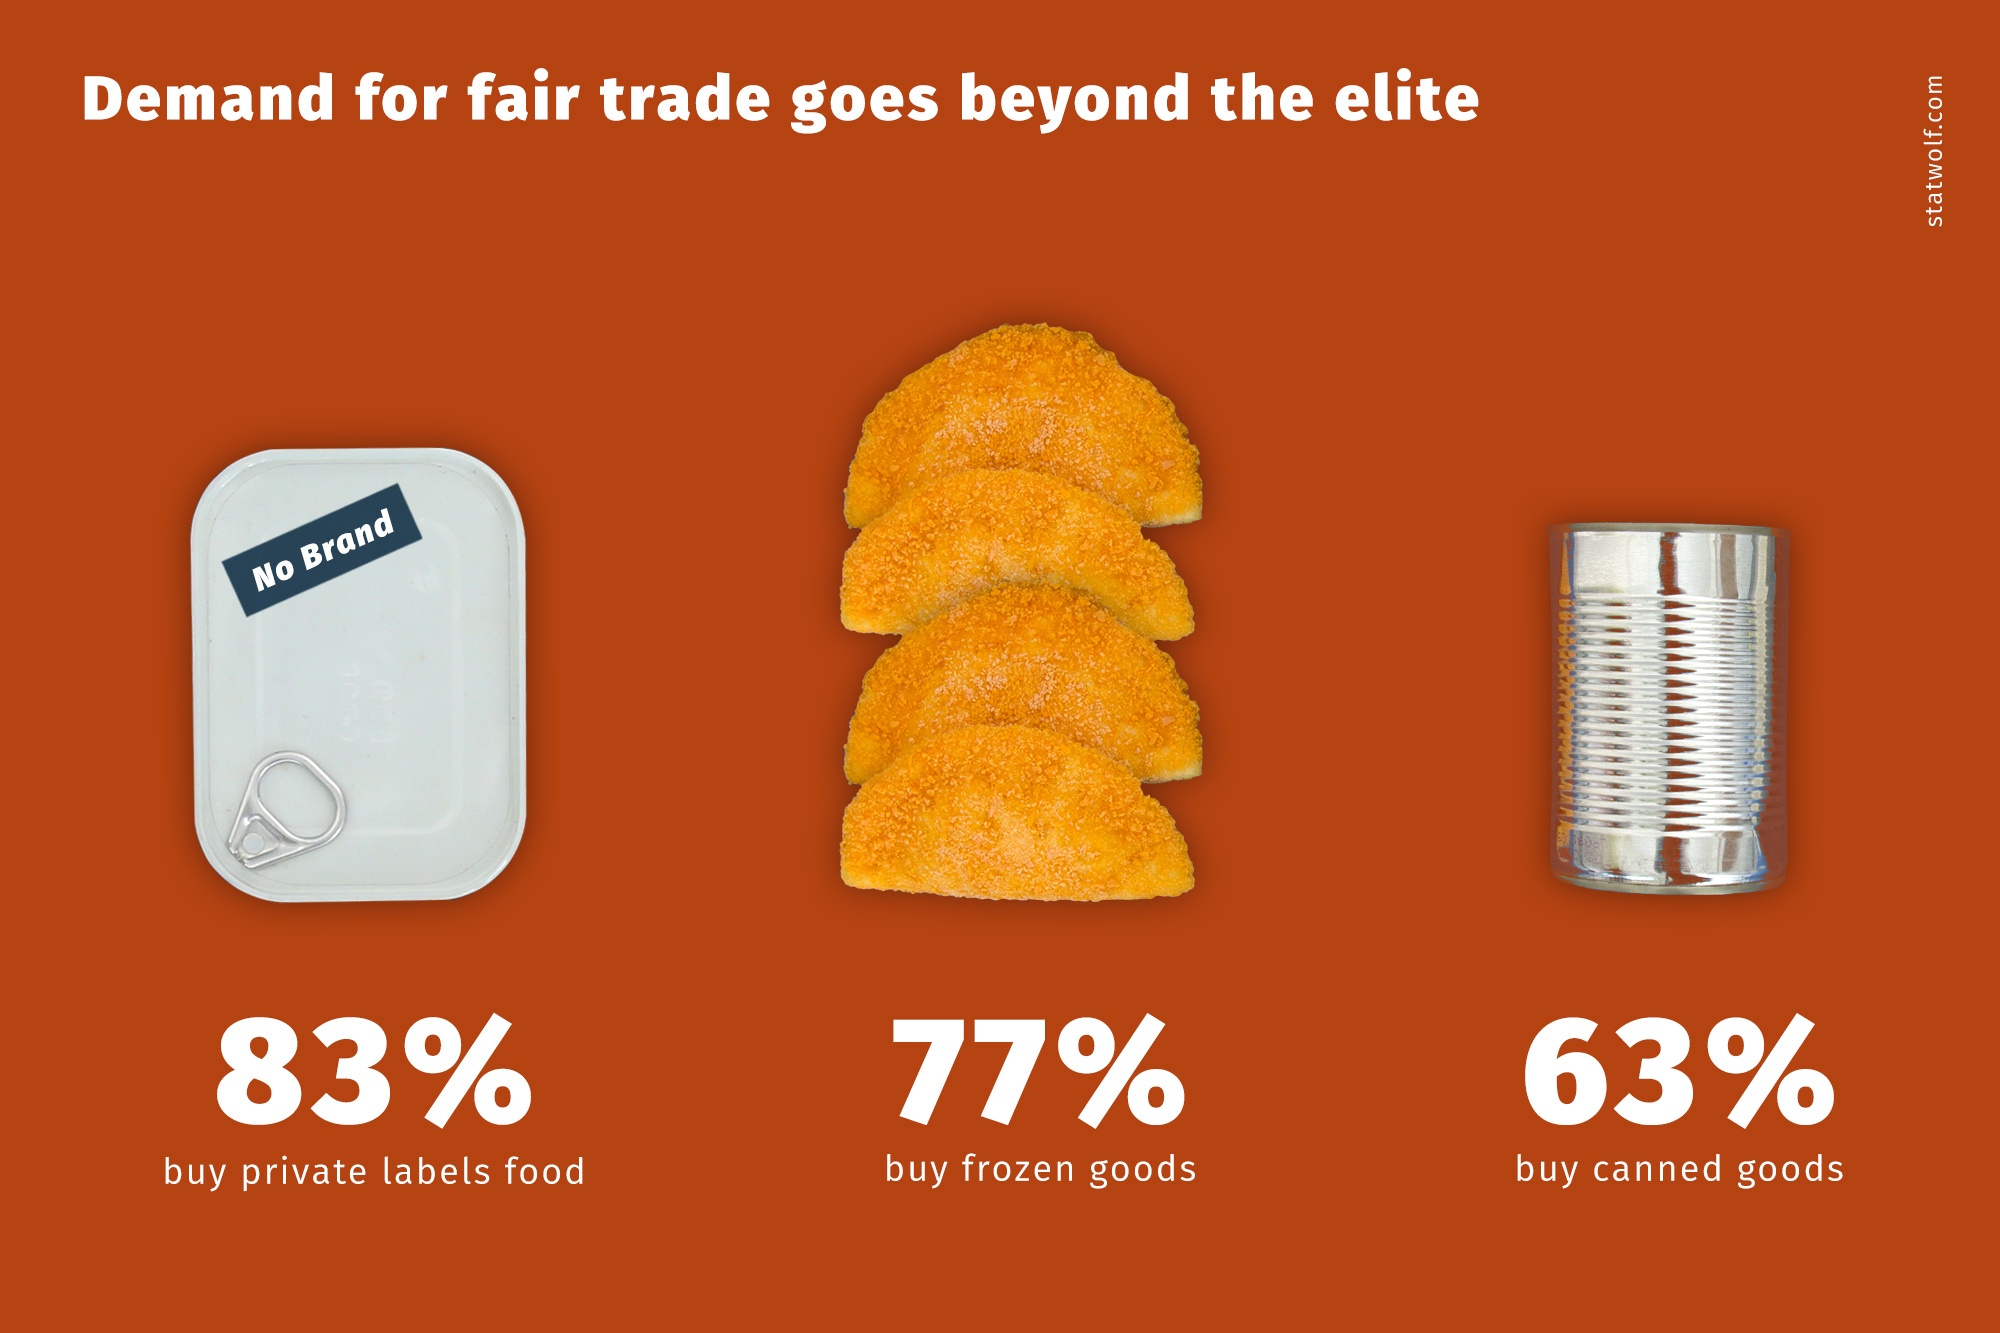 Demand For Fair Trade Goes Beyond The Elite